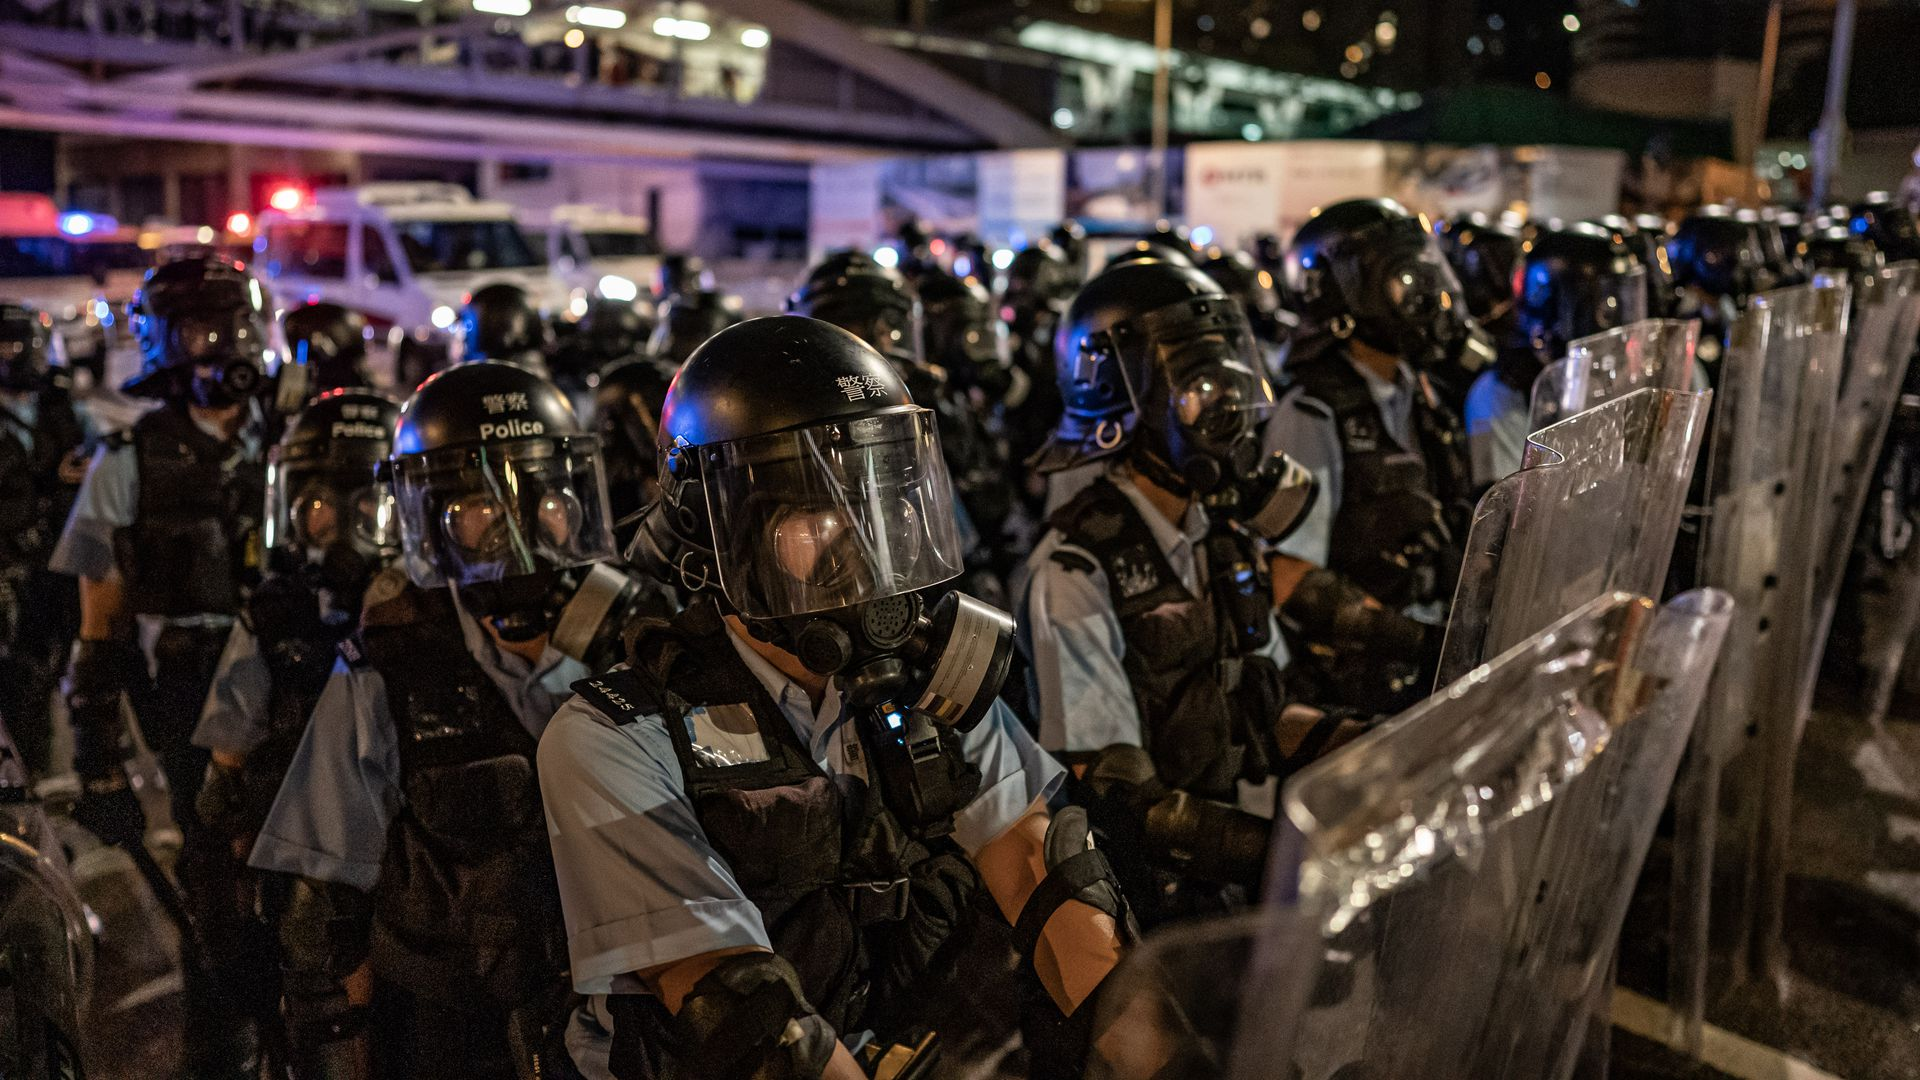 Thousands of pro-democracy protesters faced off with riot police on Monday during the 22nd anniversary of Hong Kong's return to Chinese rule as riot police officers u